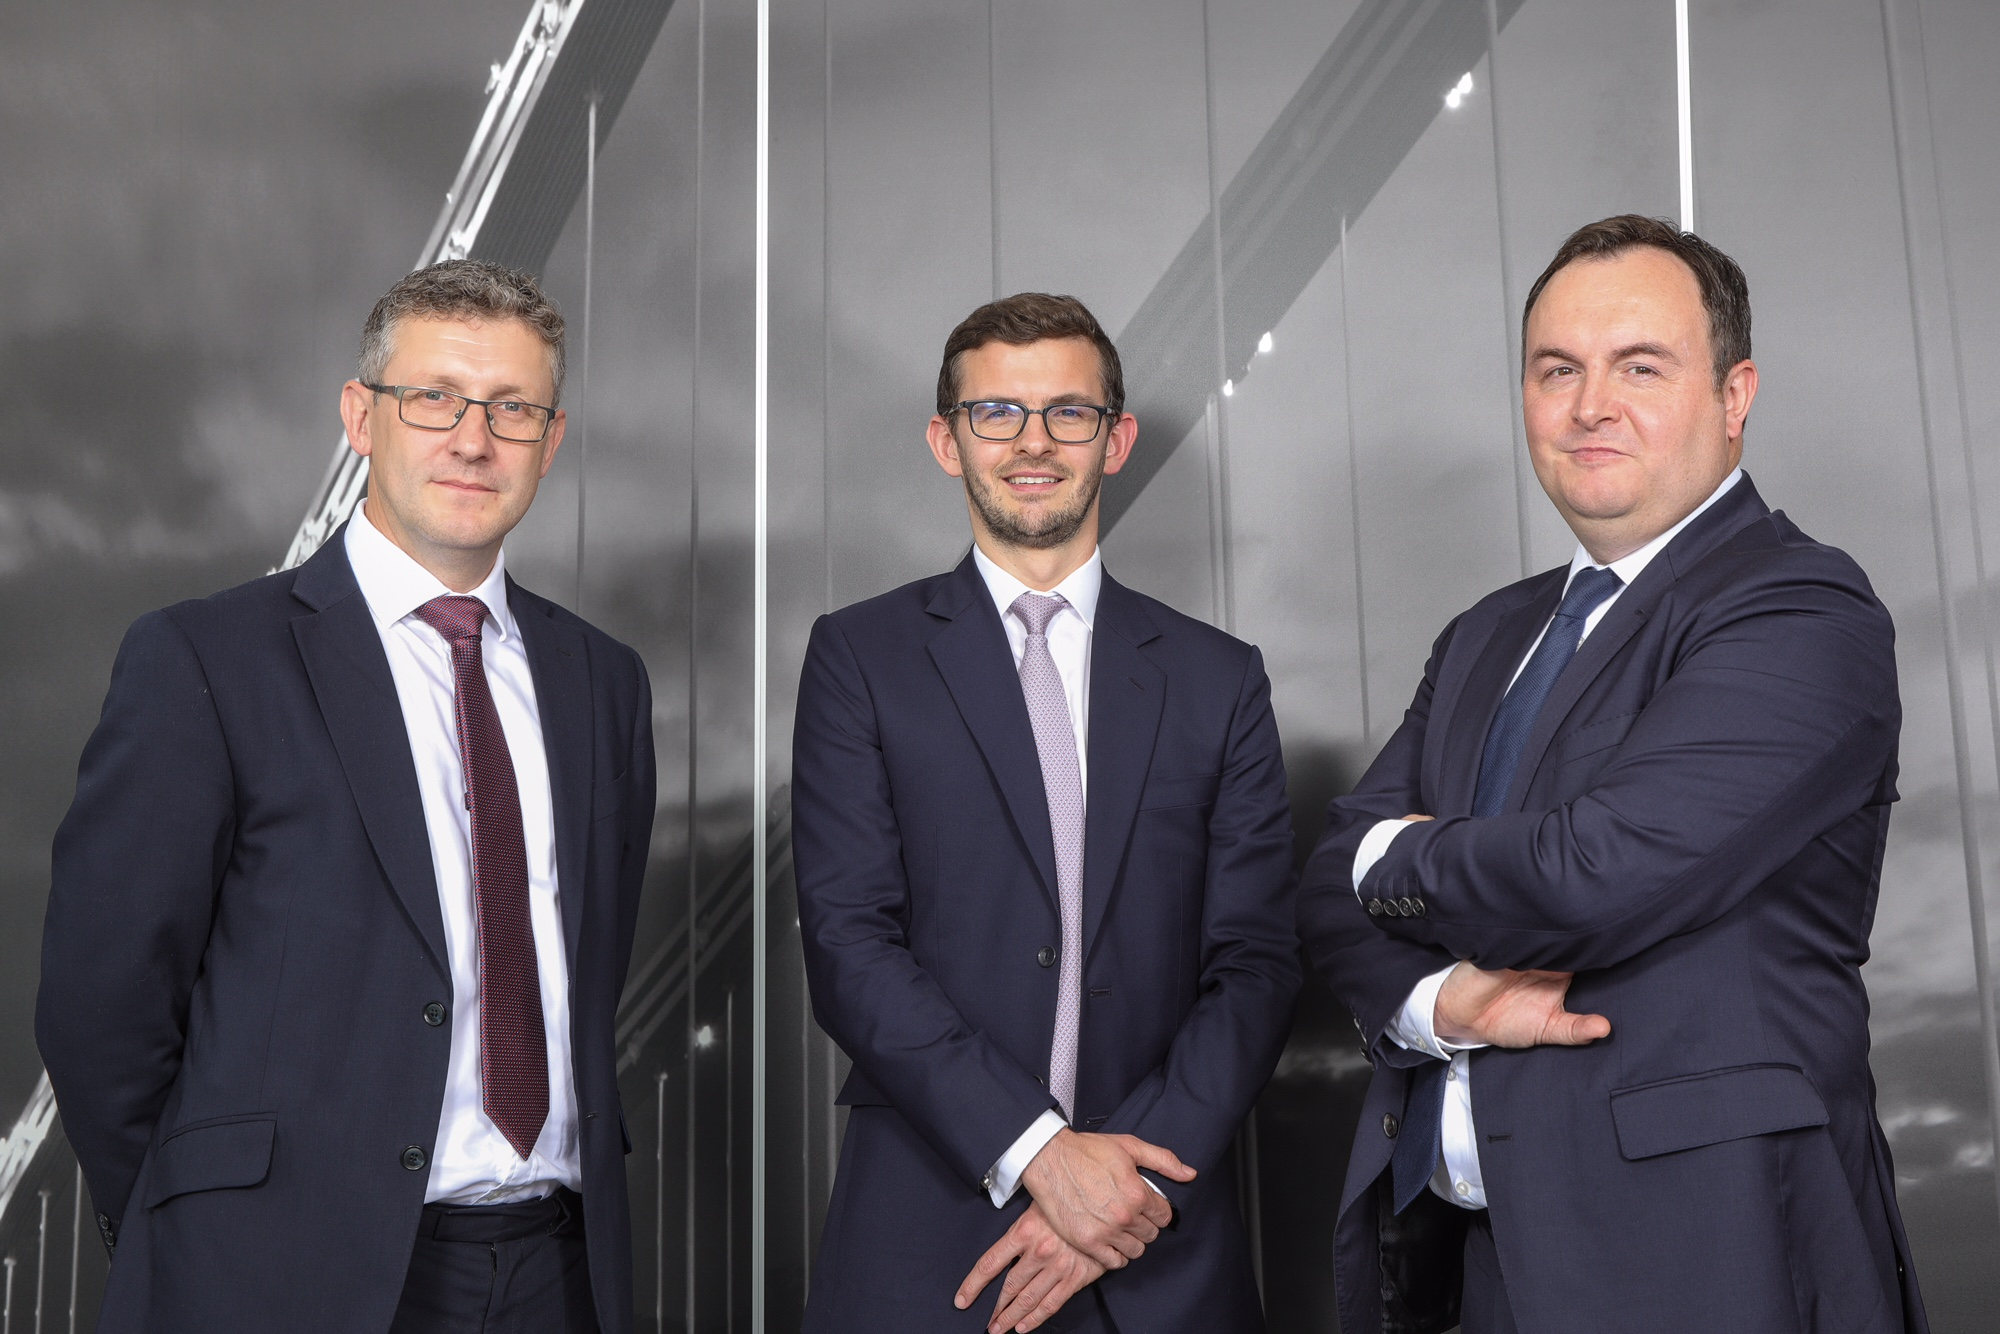 CBRE launches team to handle major development schemes across South West